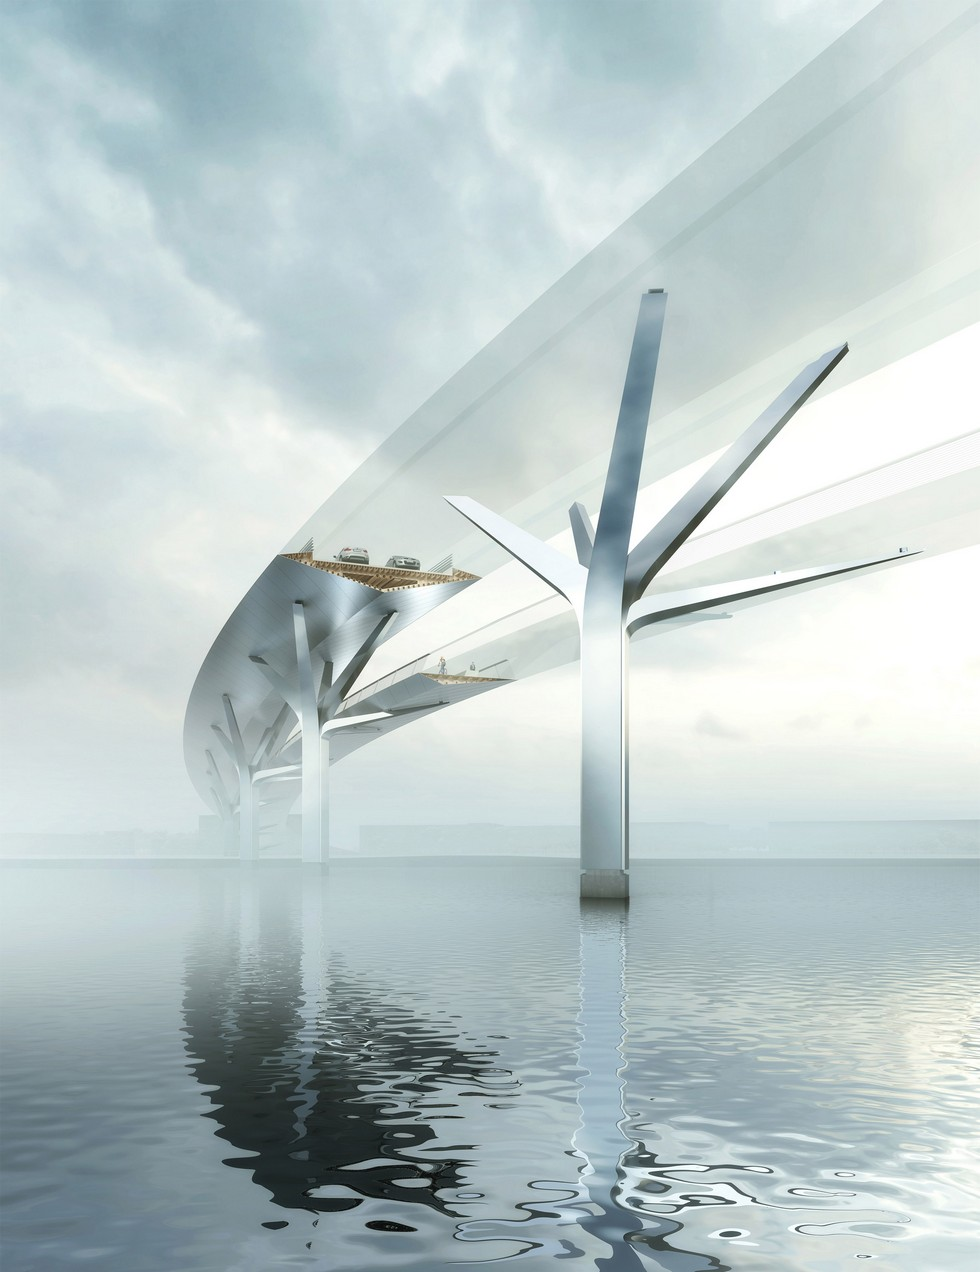 design bridges FOSTER AND PARTNERS: THE NEW DESIGN BRIDGES Featured